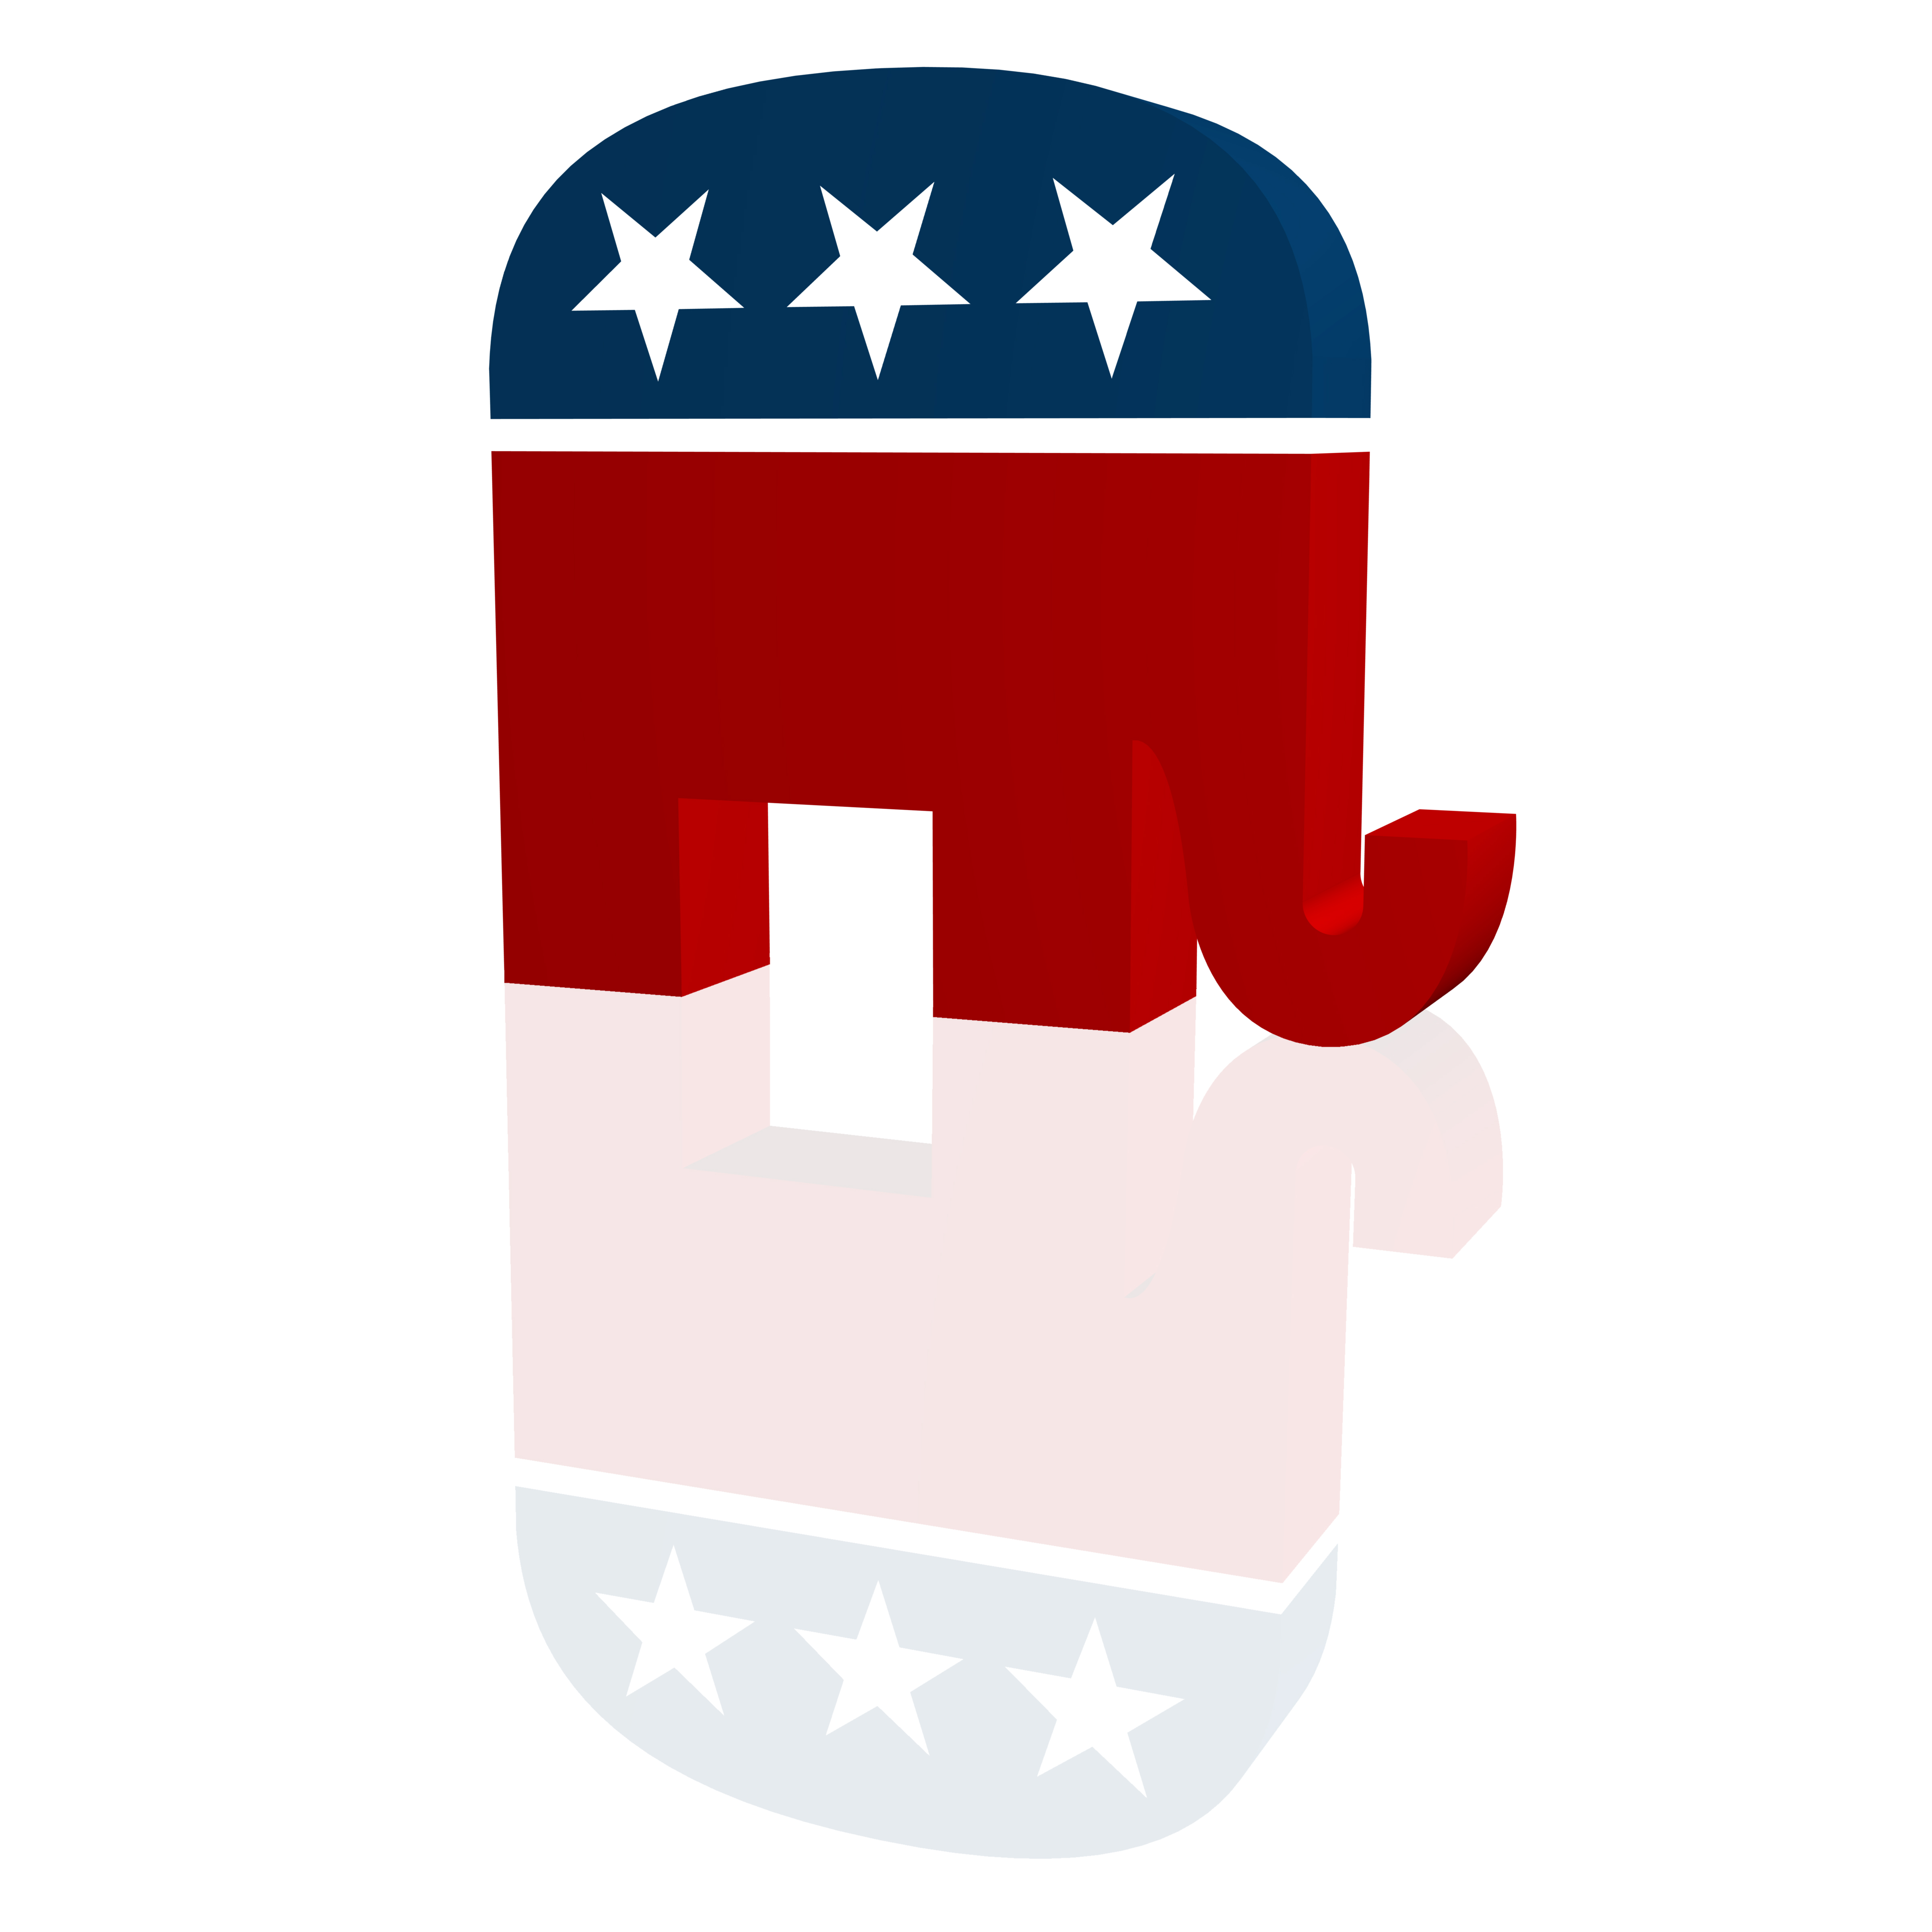 Election 101: Why is the Republican Party known as the GOP